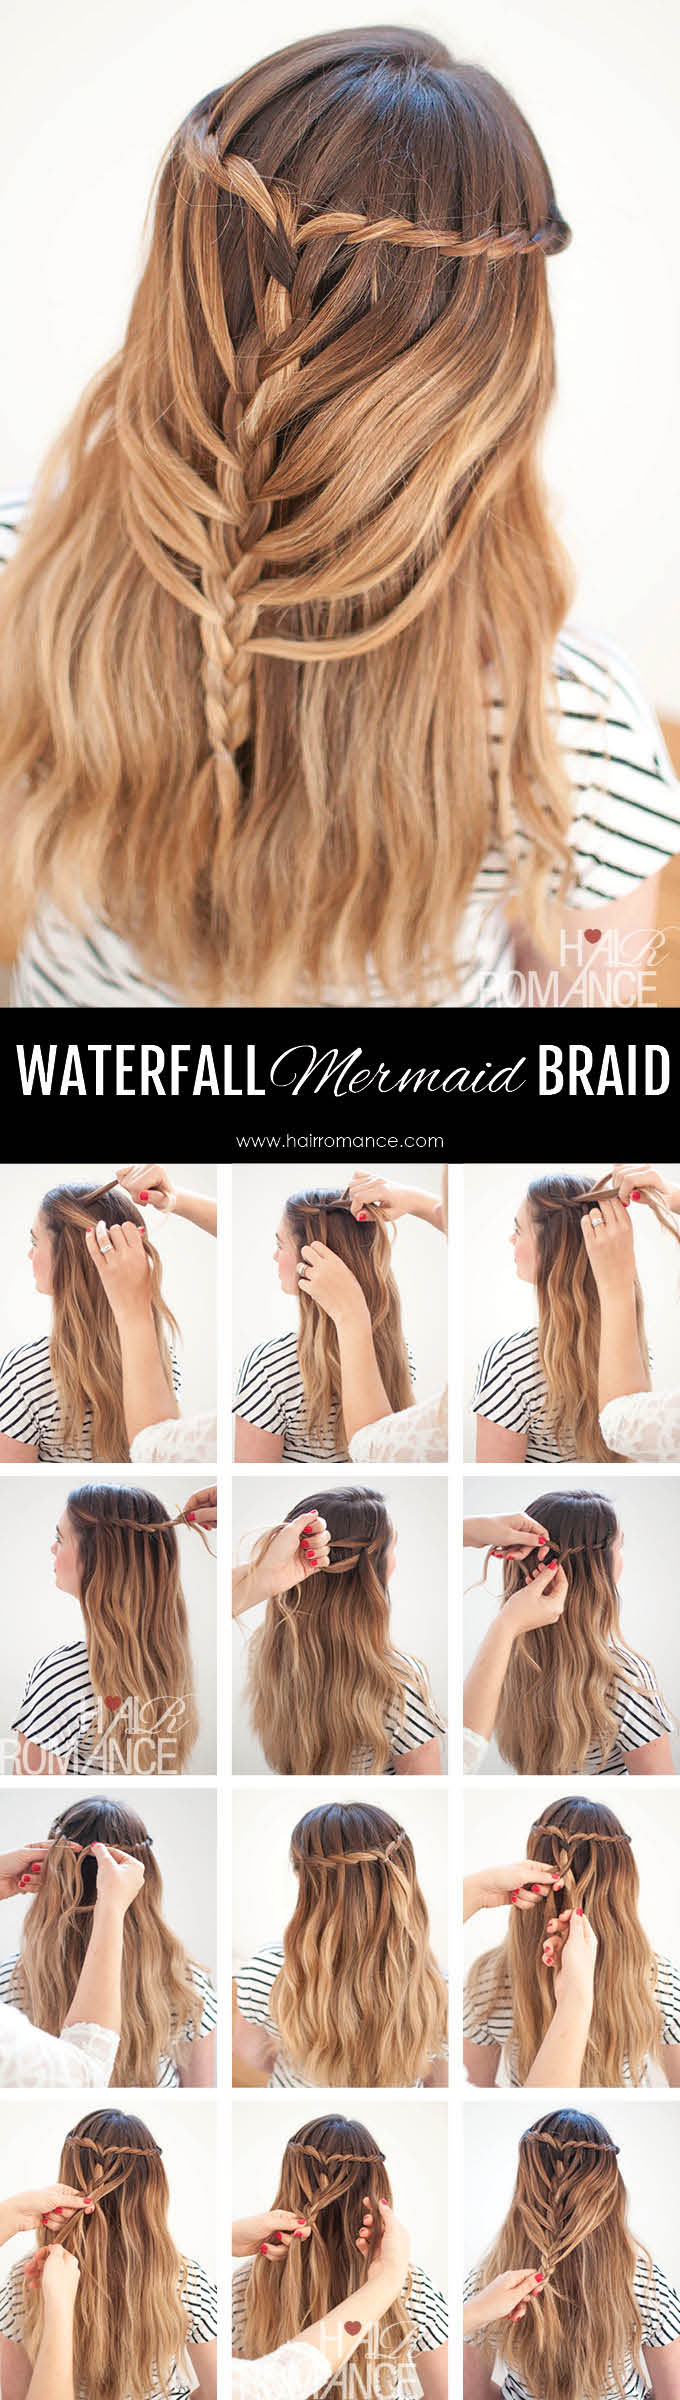 Hair-Romance-Waterfall-Mermaid-Braid-Tutorial-for-Long-Hair-7